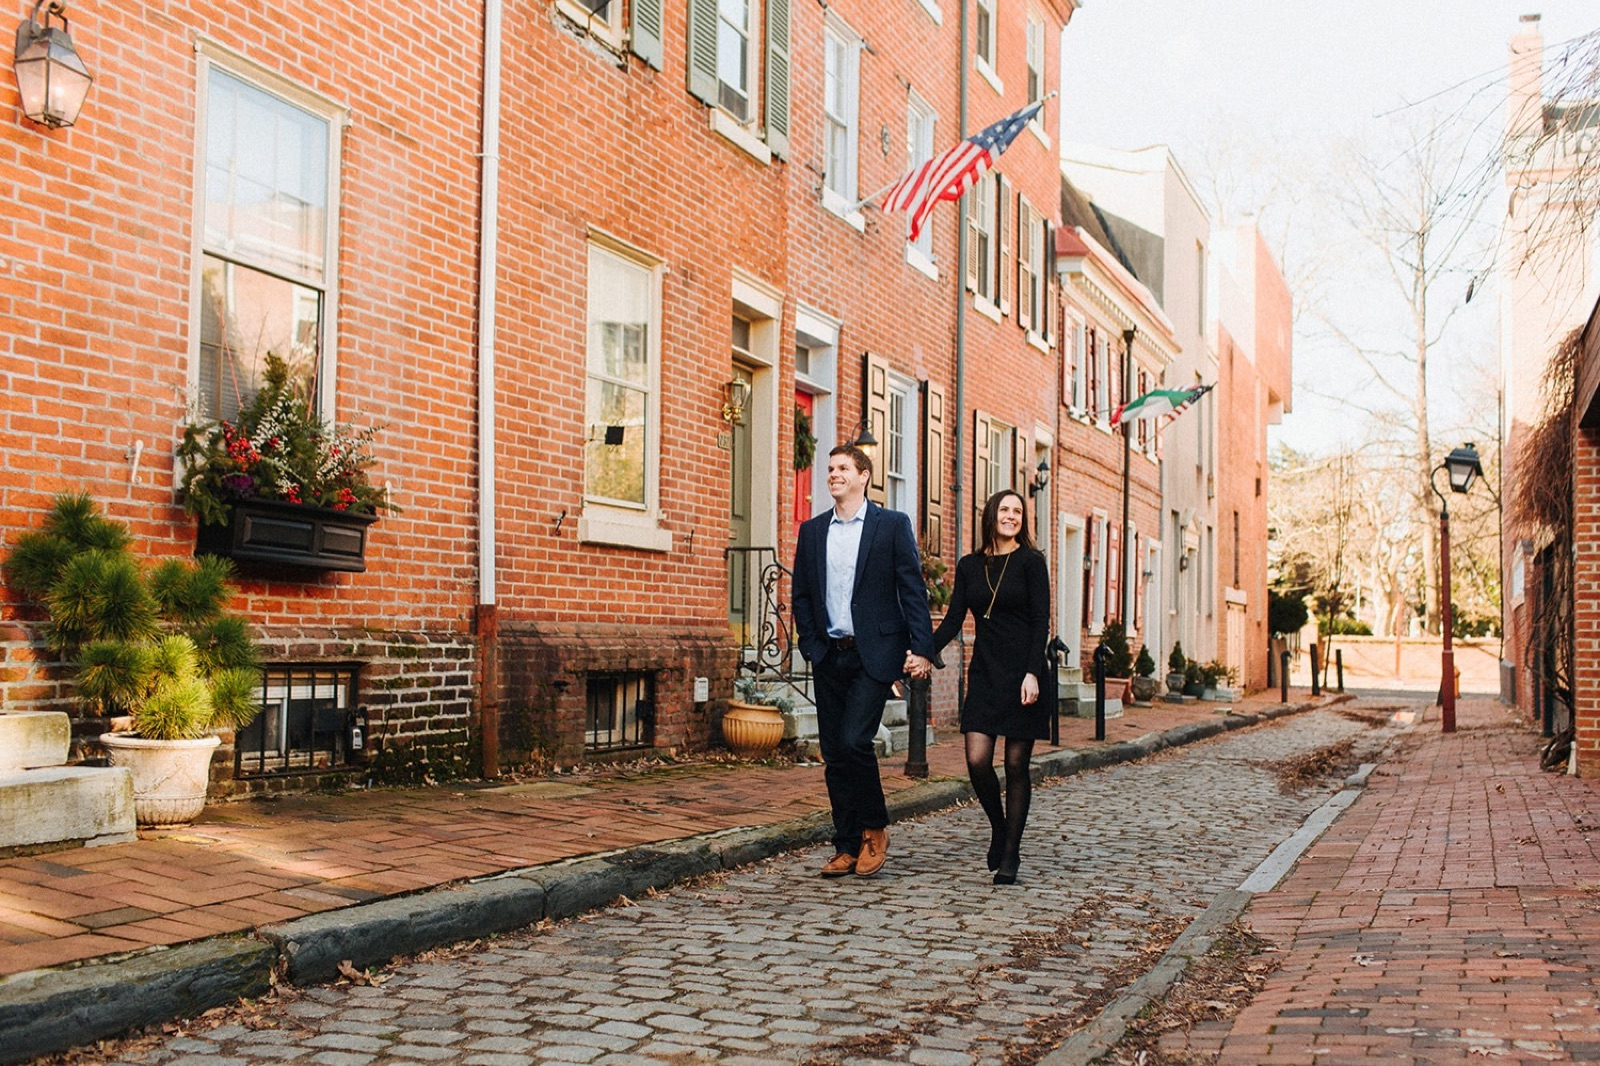 03_Headhouse_photography_engagement_philadelphia.jpg